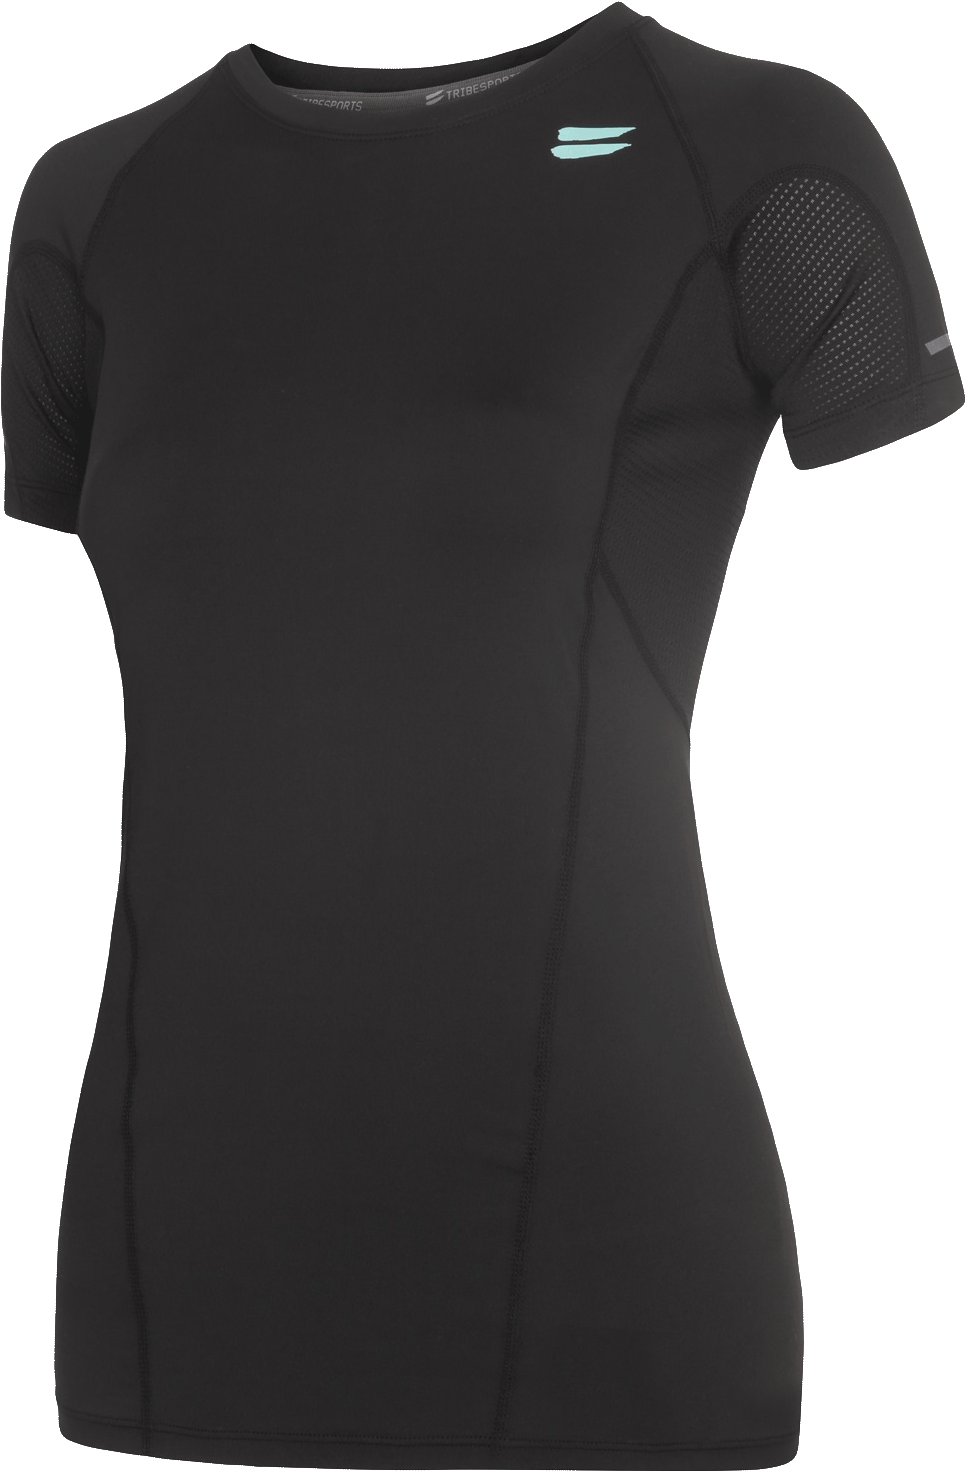 Tribesports Women's Performance T-Shirt Short Sleeve